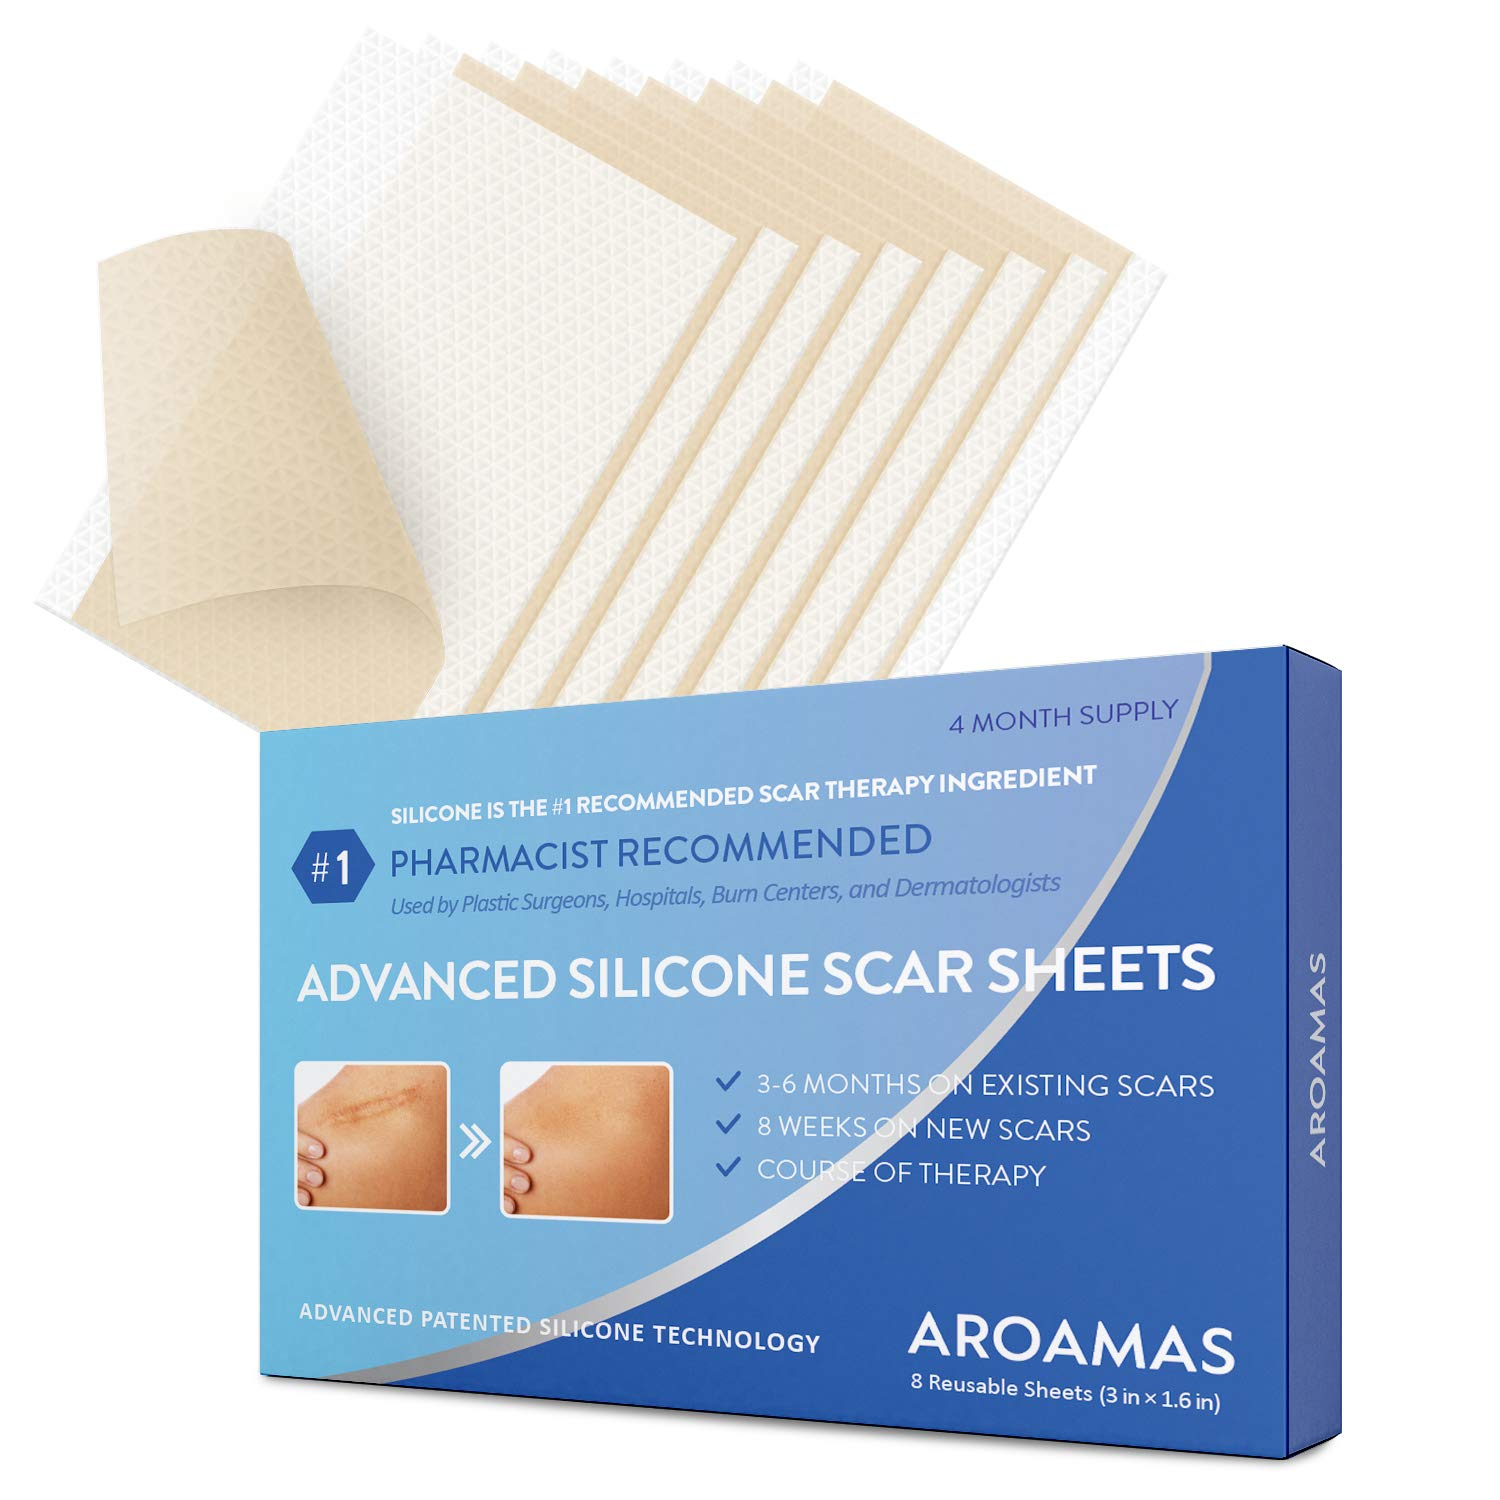 Aroamas Professional Silicone Scar Sheets, Soften and Flattens Scars Resulting from Surgery, Injury, Burns, Acne, C-section and more, Soft Silicone Scar Strips, 3''×1.57'', 8 Sheets (4 Month Supply) by Aroamas